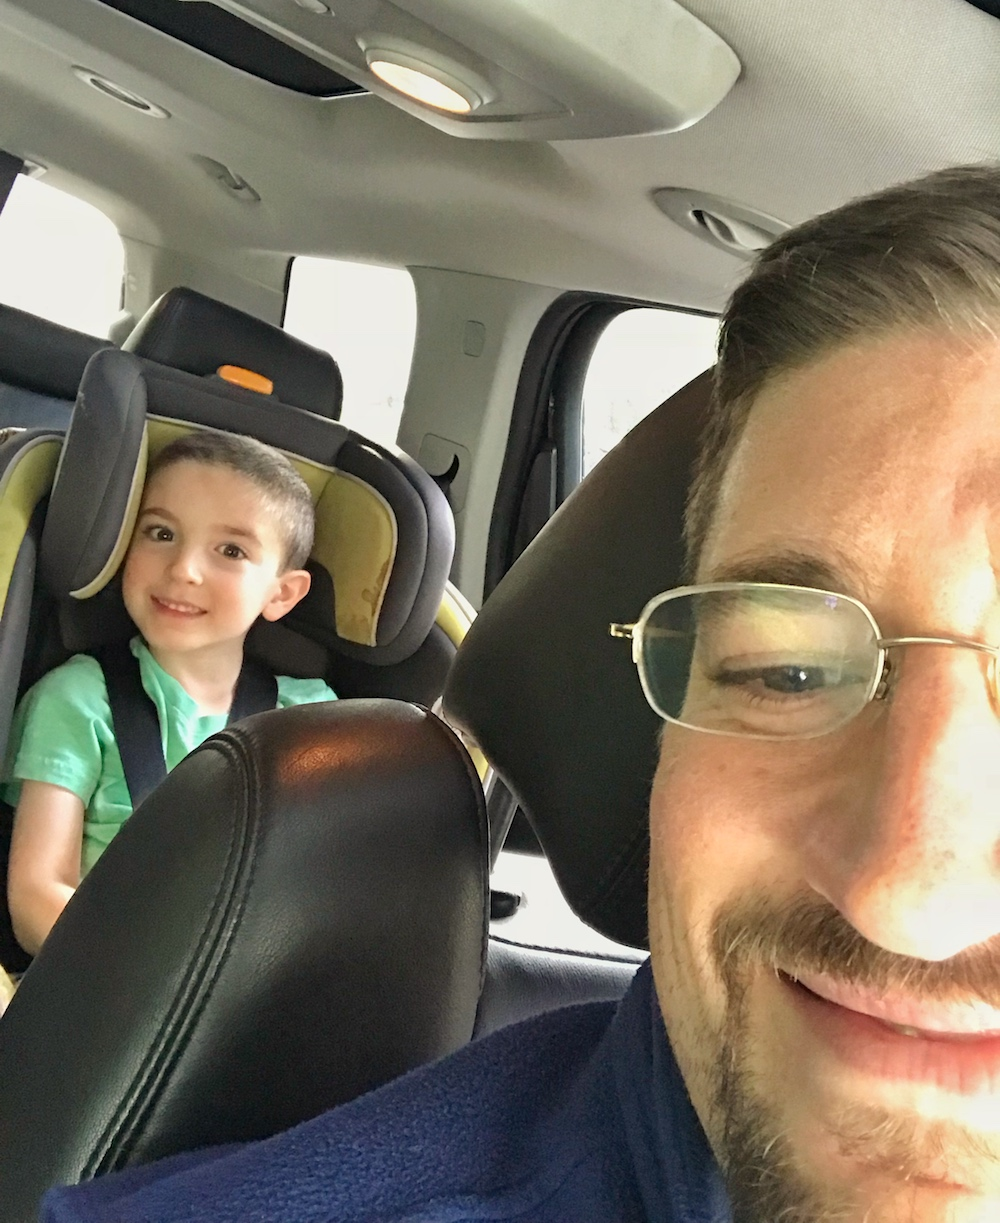 father and son car selfie - hotspot shield